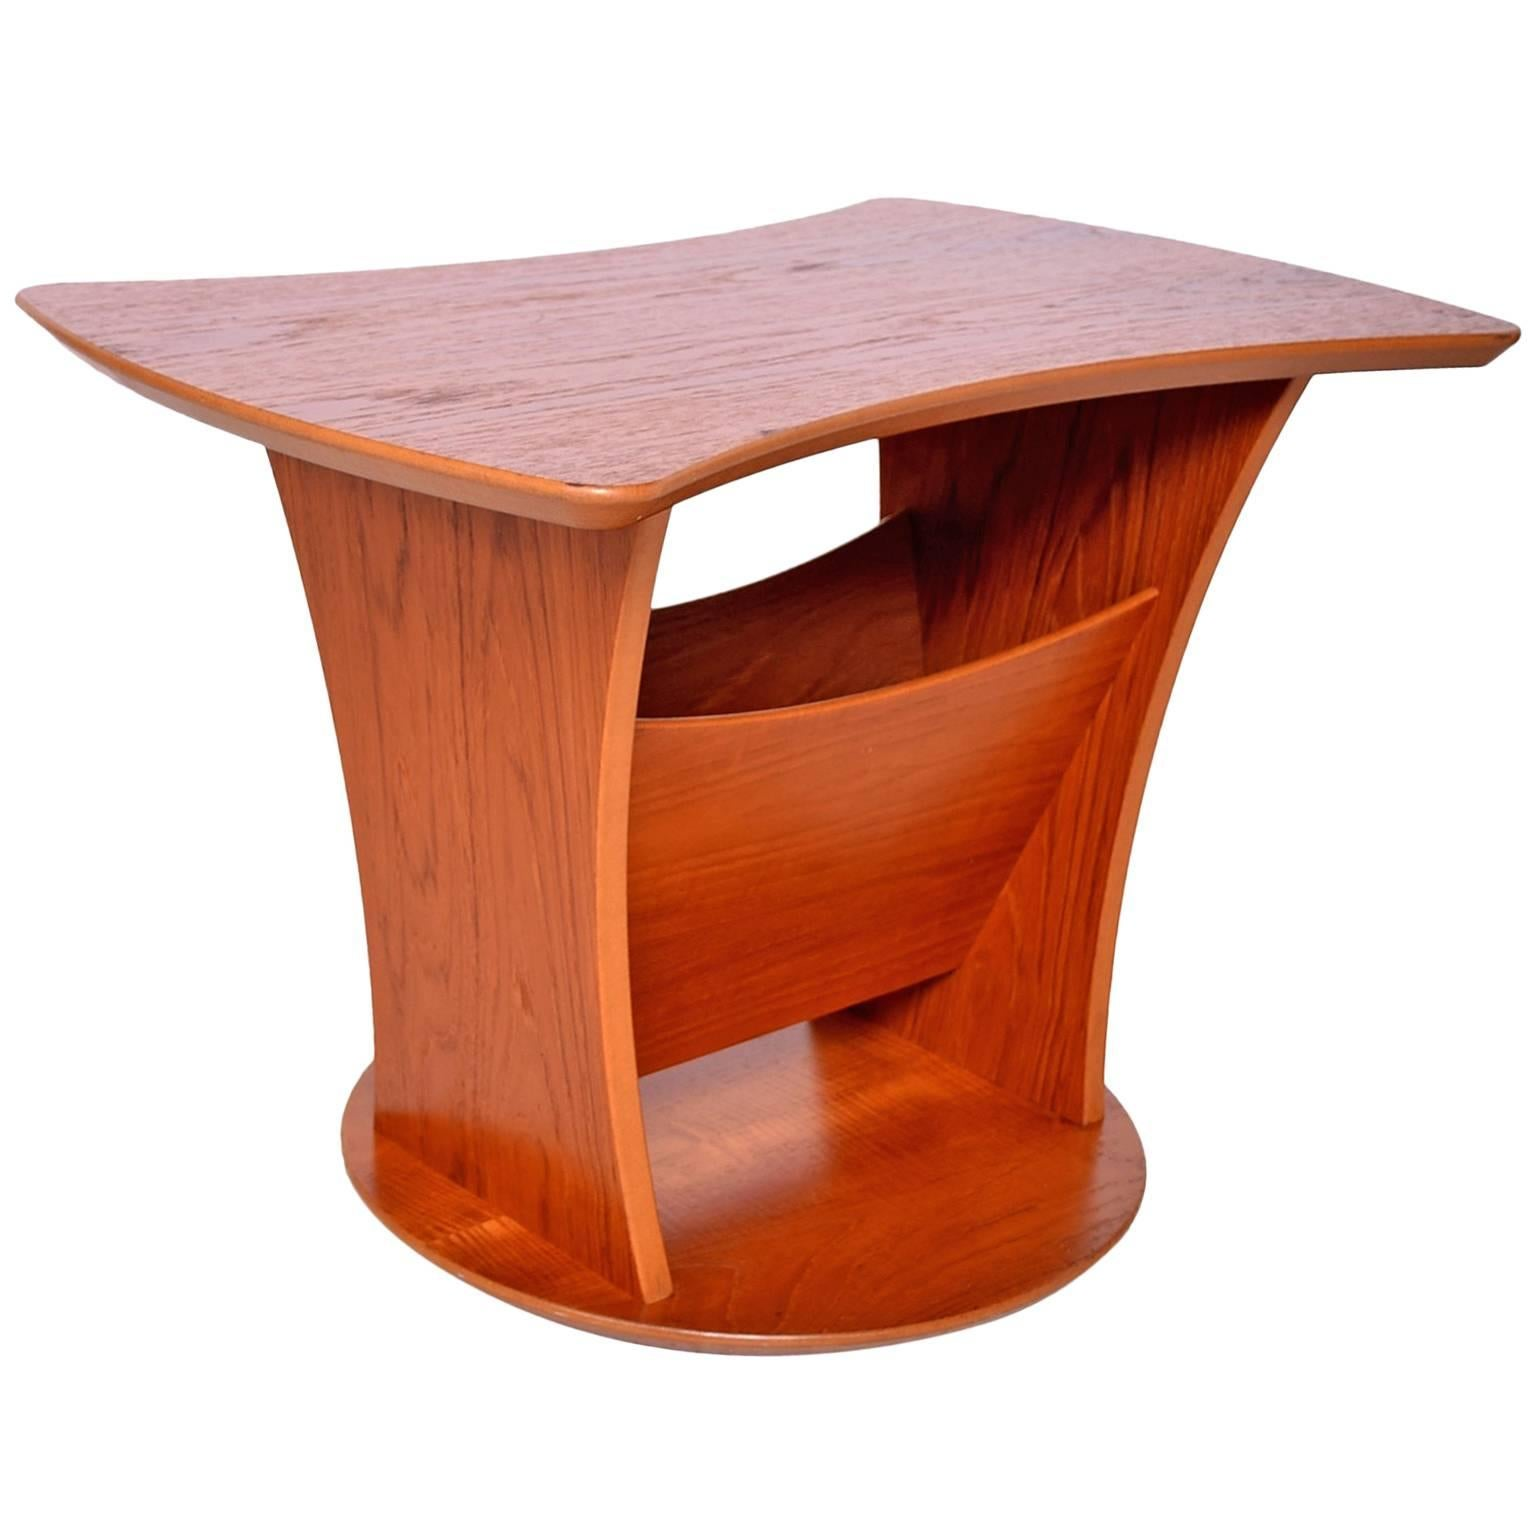 Sophisticated & Simple Sculptural Side Table with Magazine Holder in Teak 1980s